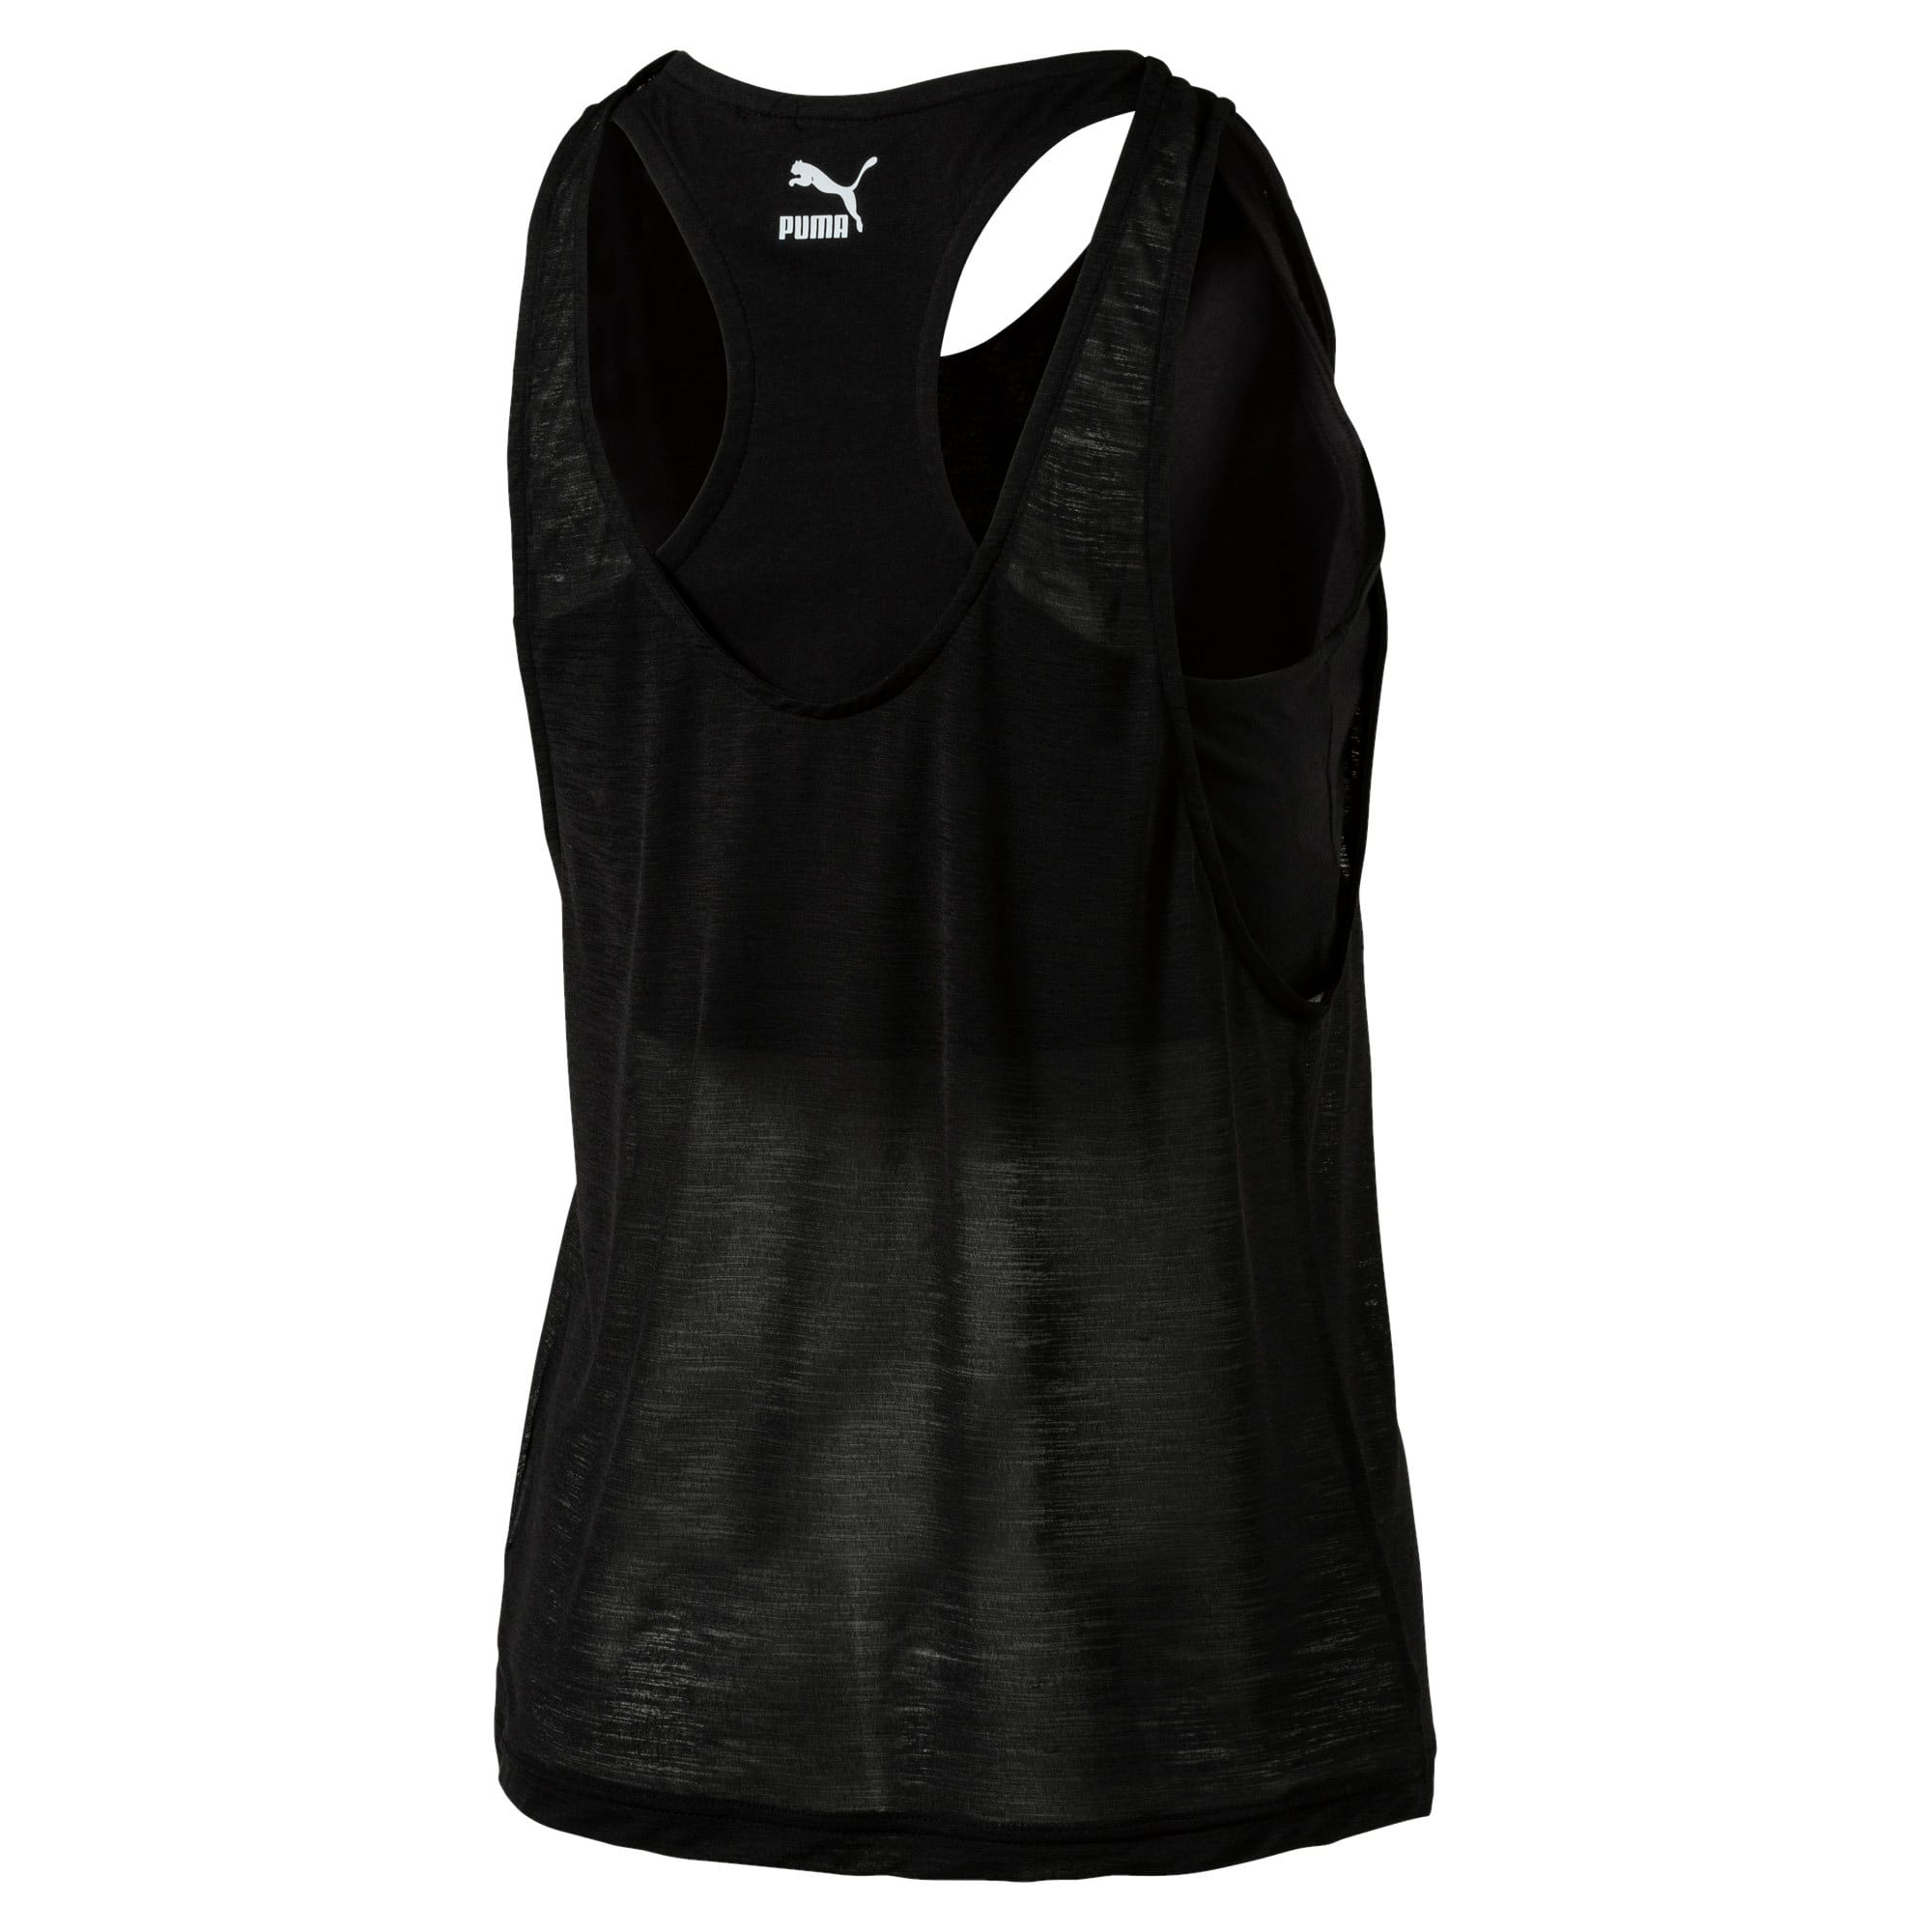 Thumbnail 3 of Archive Women's Overlay Tank Top, Puma Black, medium-IND